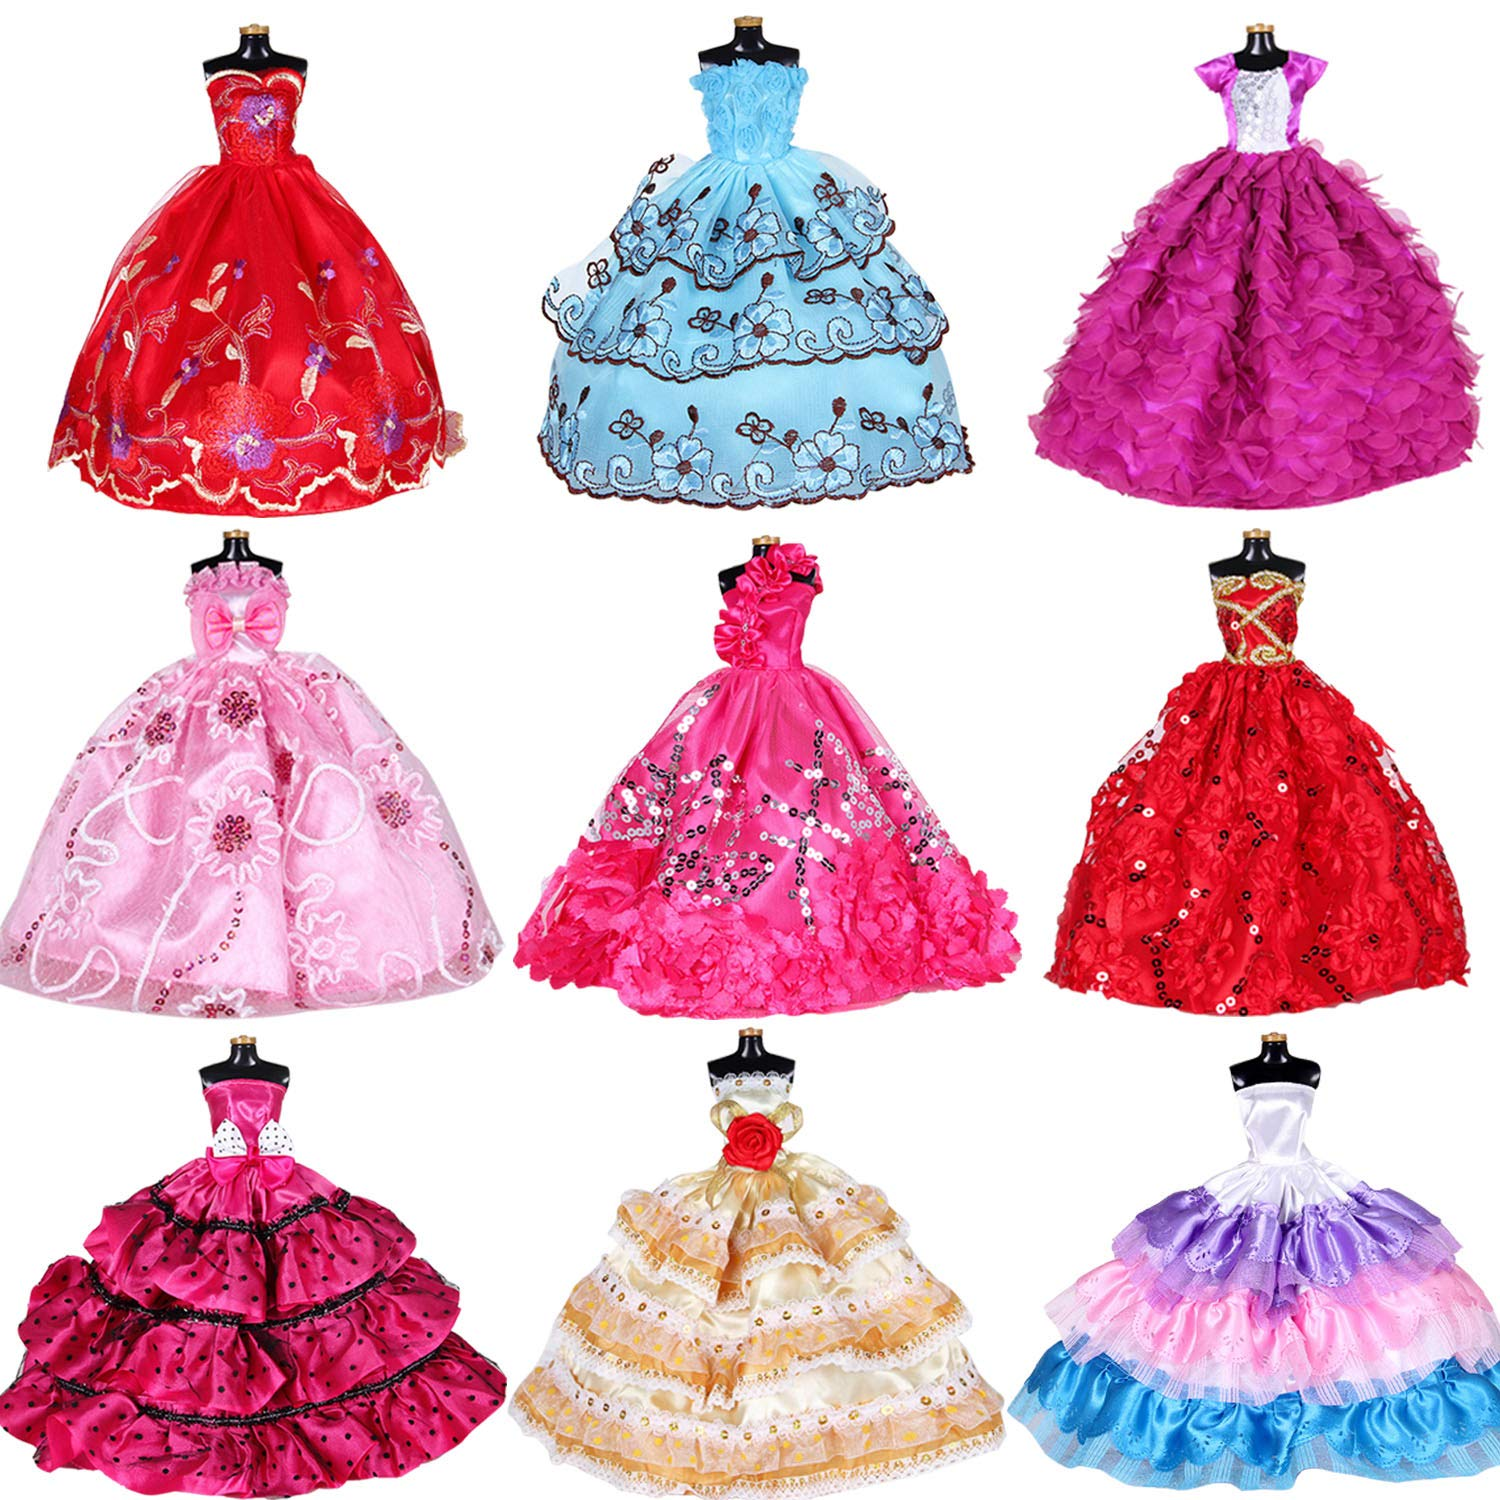 Doll dresses for girl. Dolls clipart clothes barbie